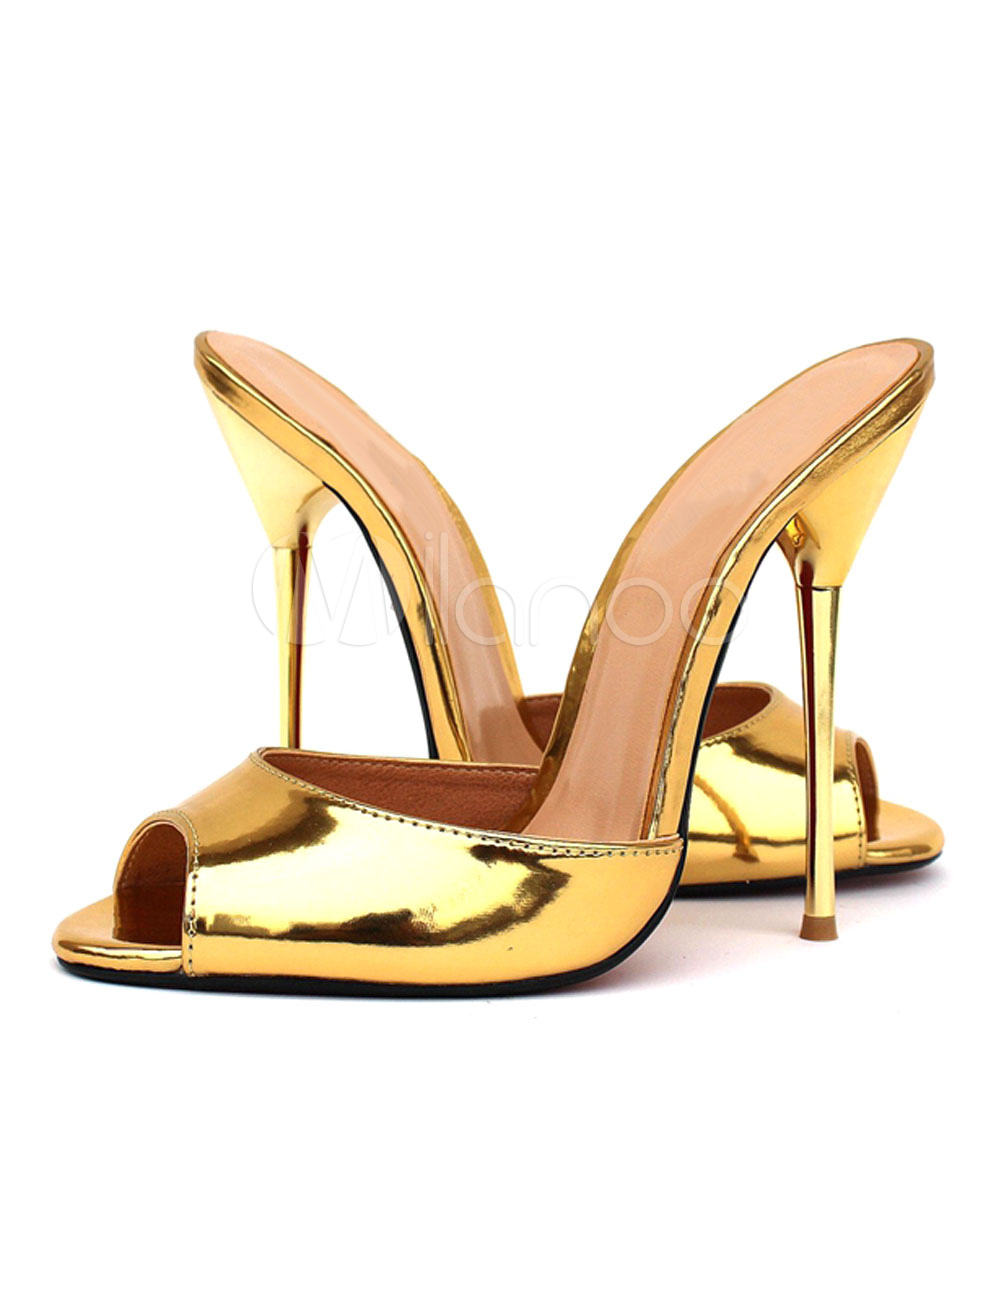 Gold Mule Sandals High Heel Women's Peep Toe Stiletto Heel Summer Slippers